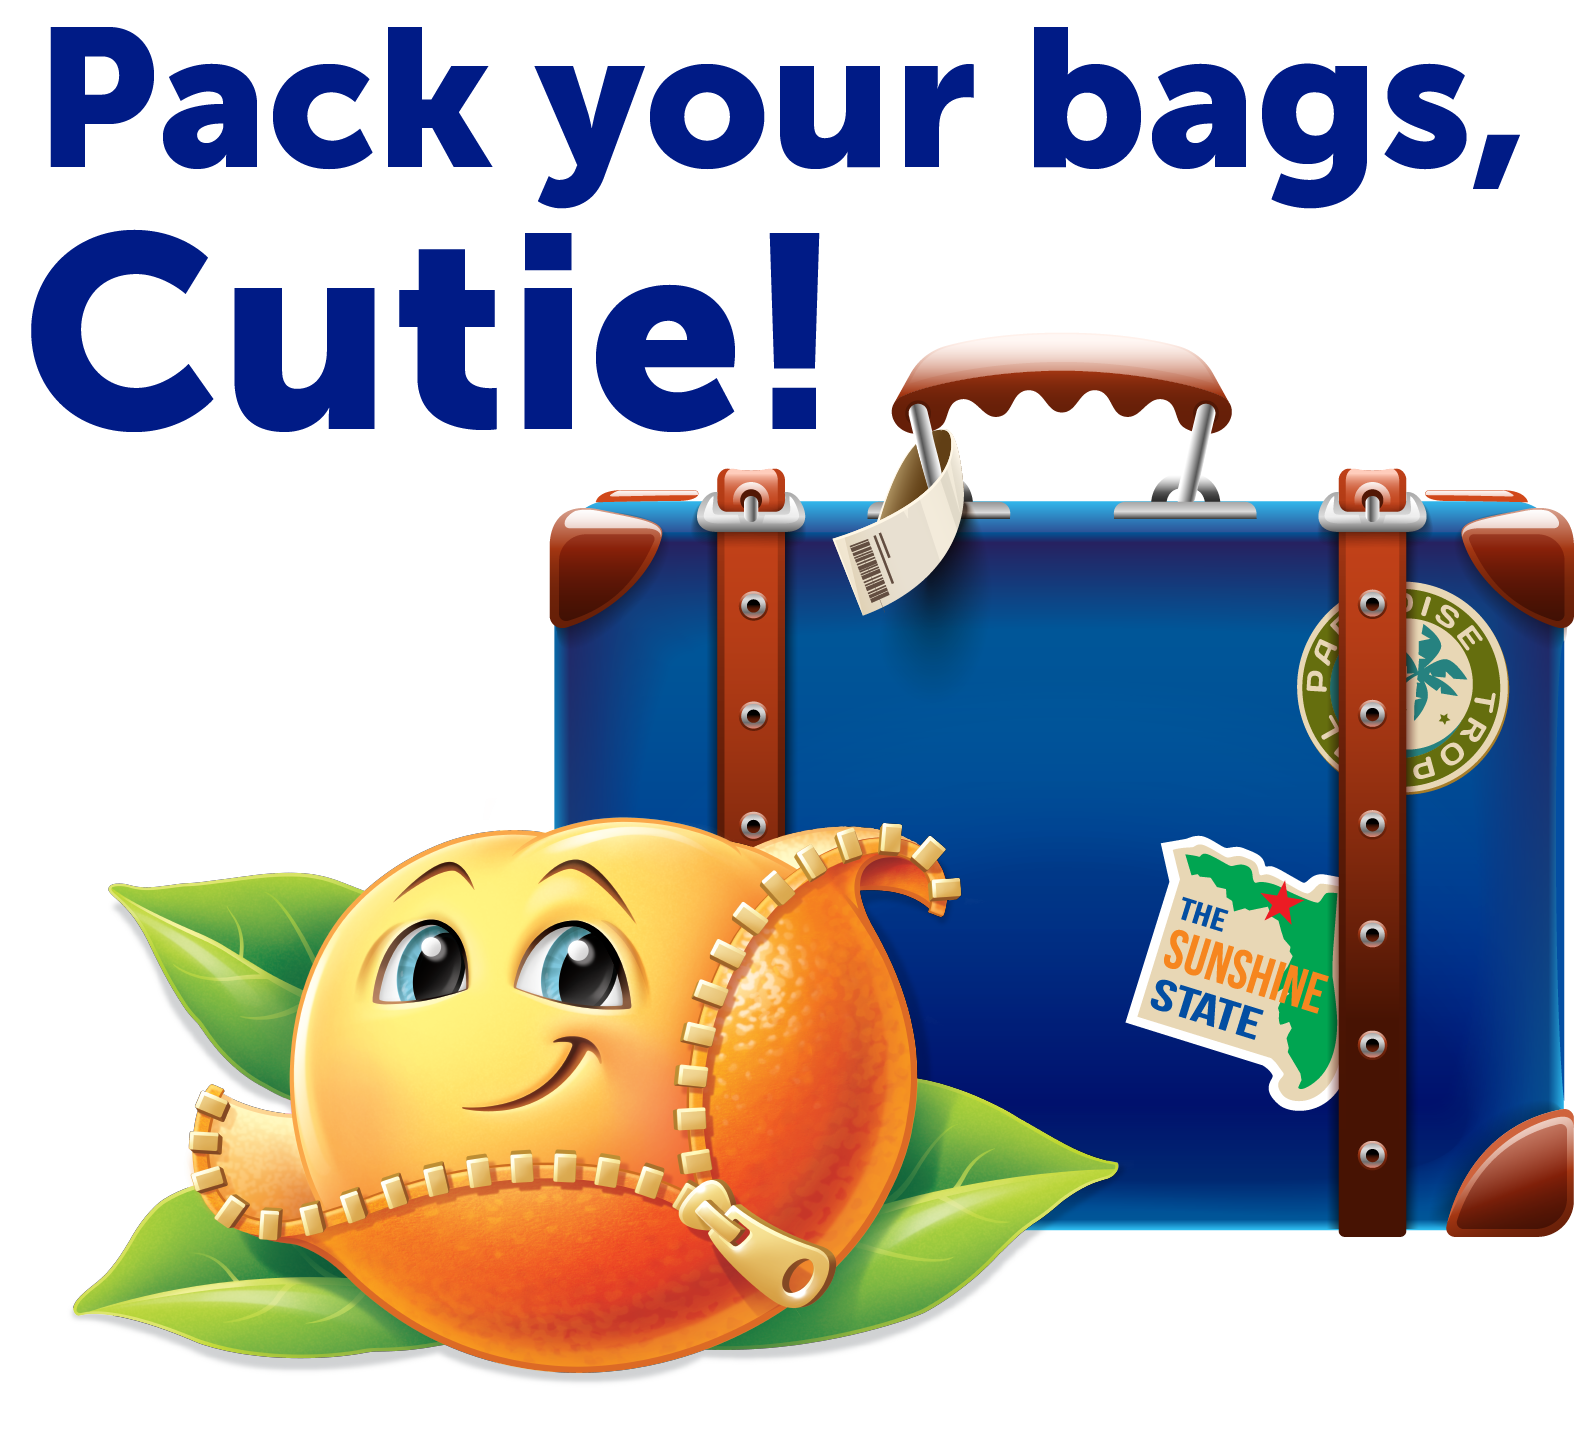 Pack your bags, Cutie!